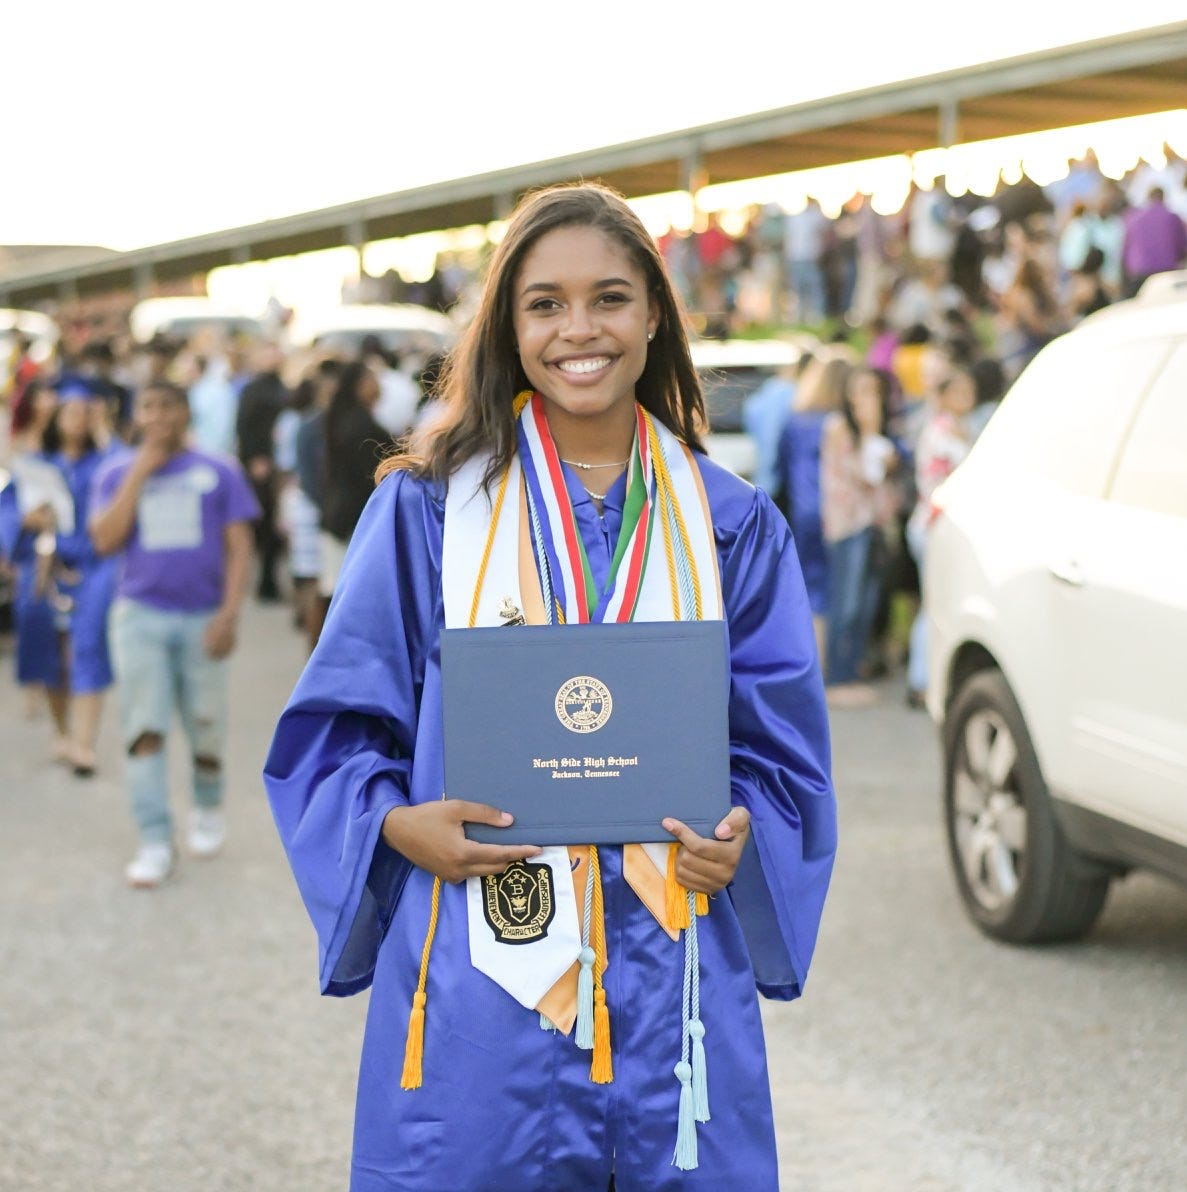 North Side student graduates in 3 years as first to do it, with highest GPA